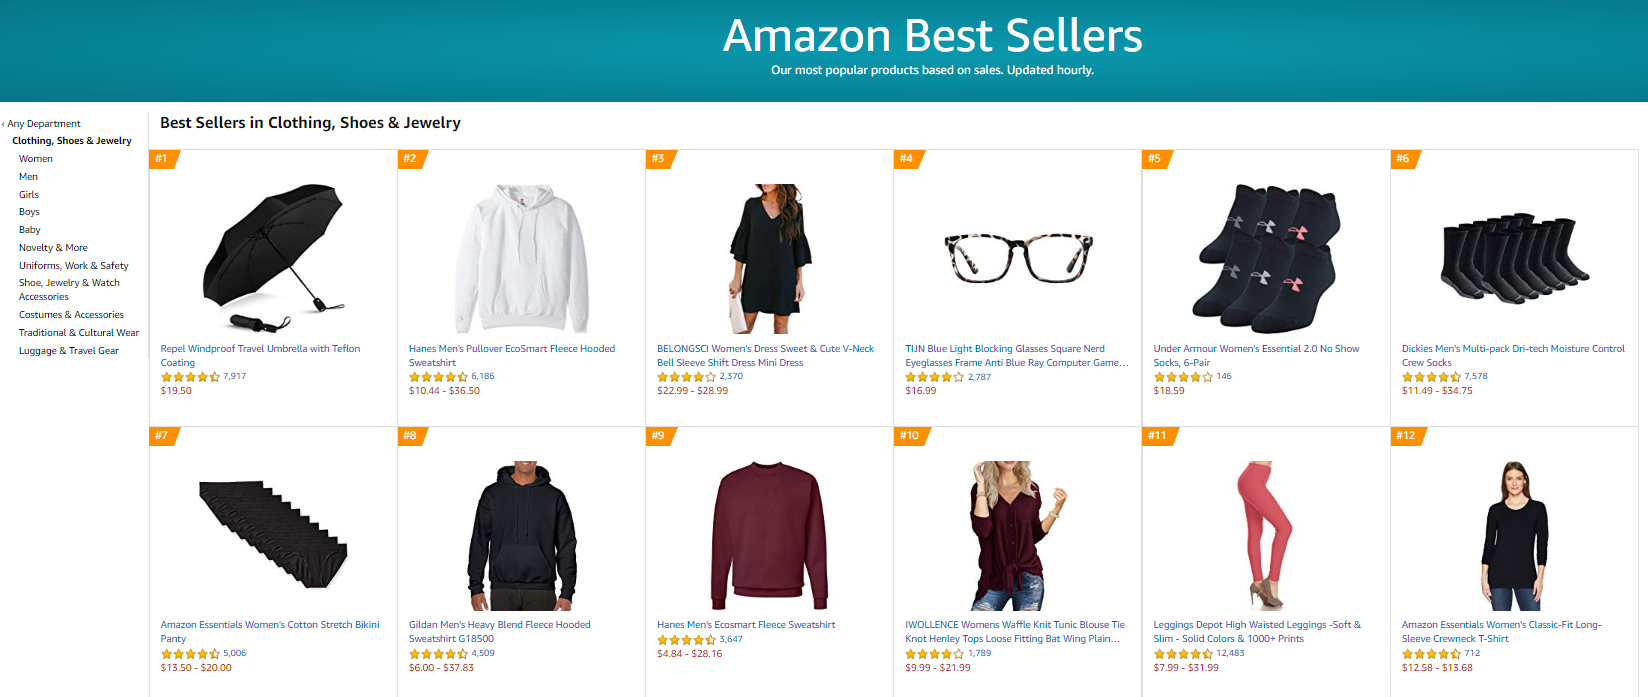 Amazon Best Sellers Start an Online Clothing Business